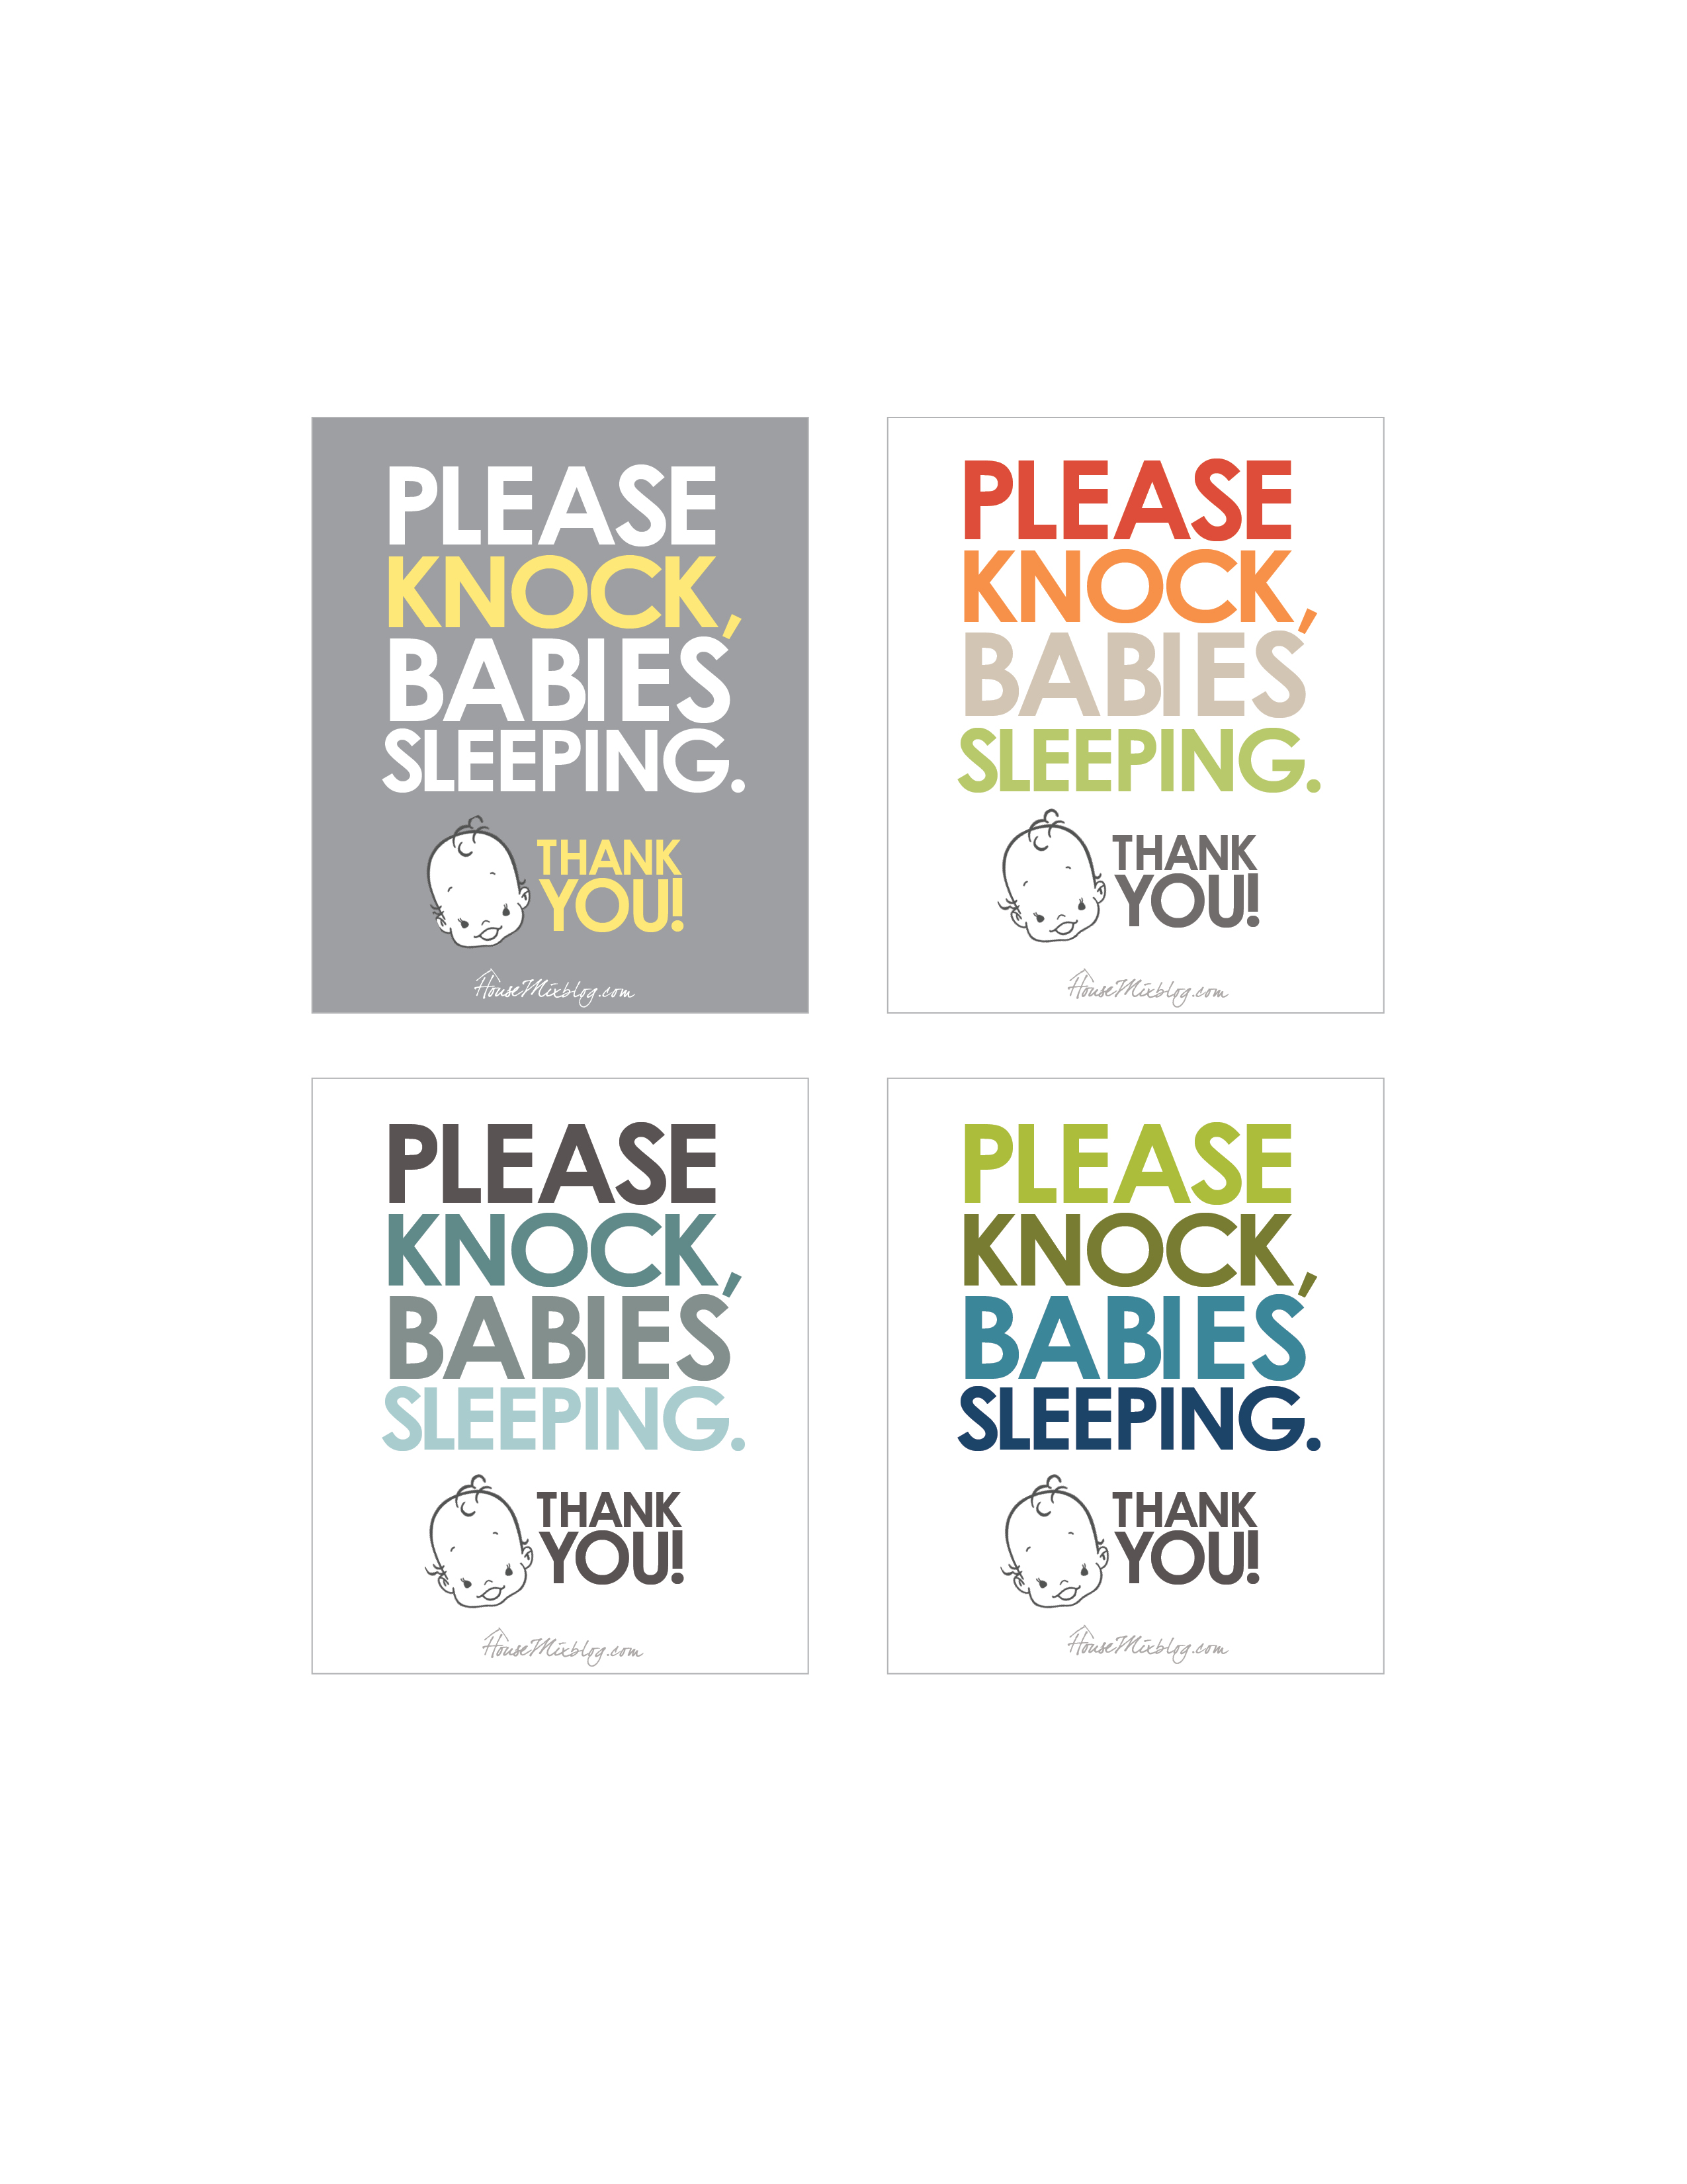 photograph about Baby Sleeping Sign Printable called Absolutely free \